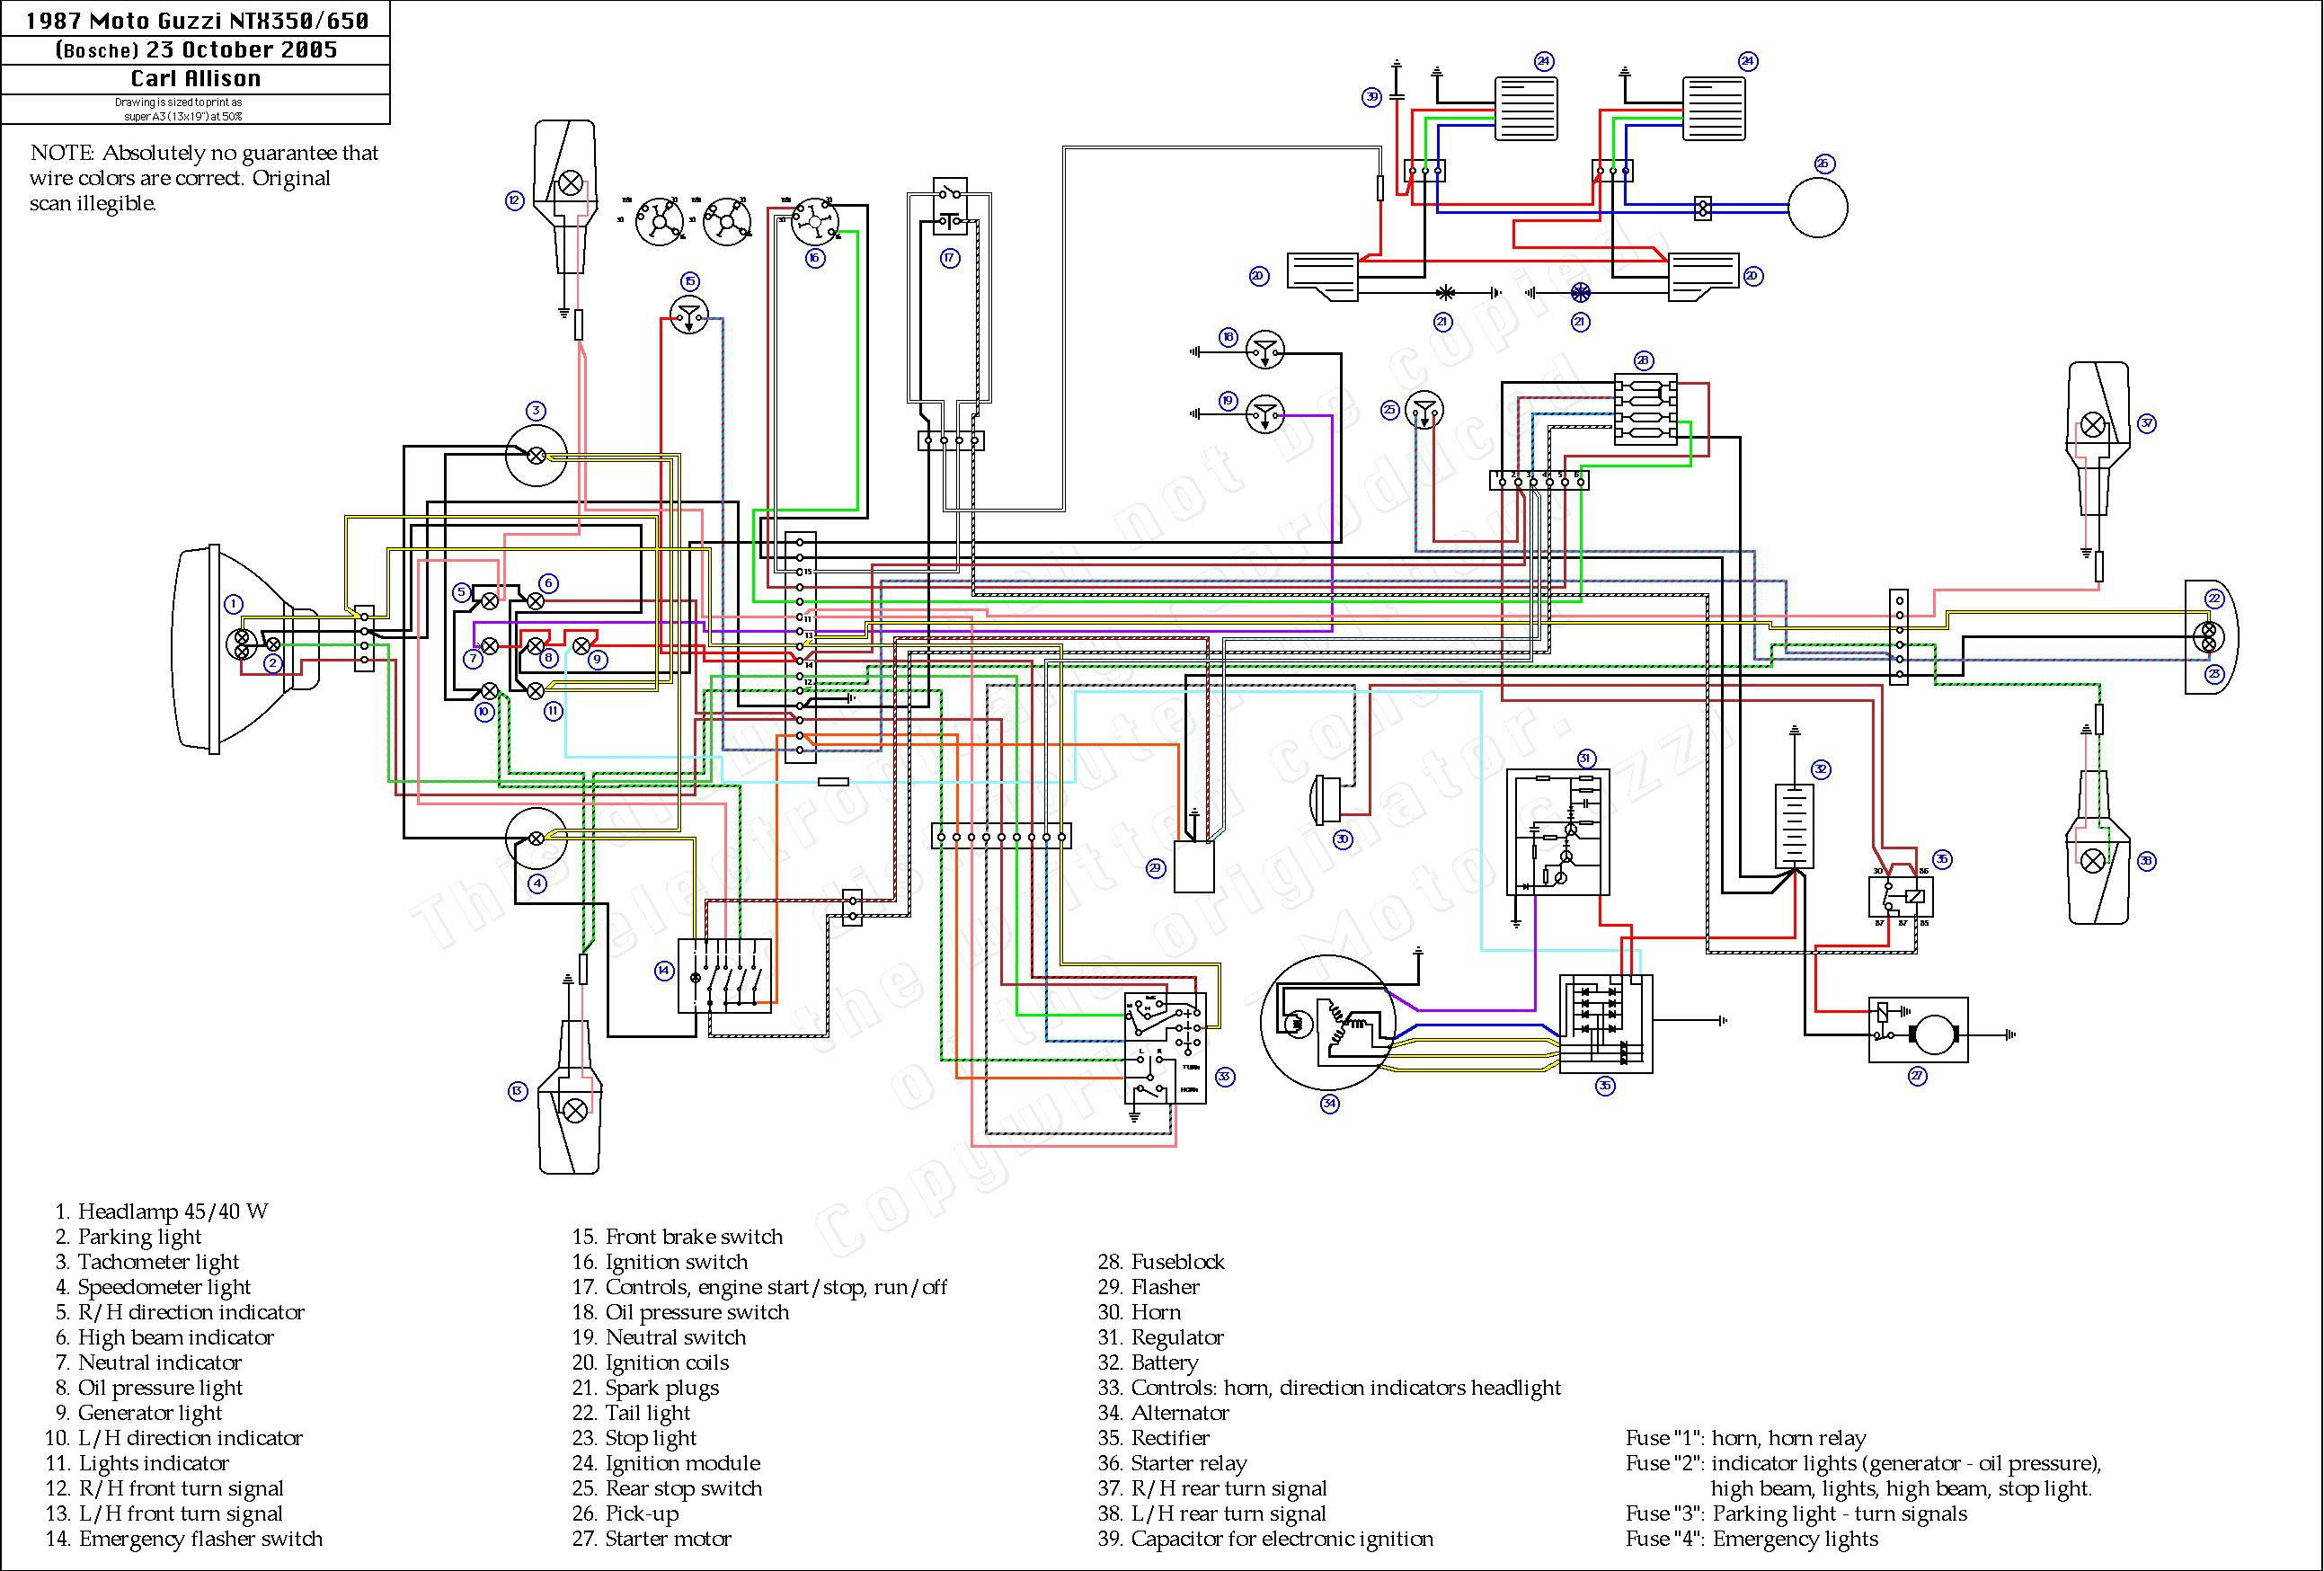 Wiring Diagram For Tao Tao 110Cc 4 Wheeler - Wiring Diagram Detailed - Tao Tao 110 Atv Wiring Diagram